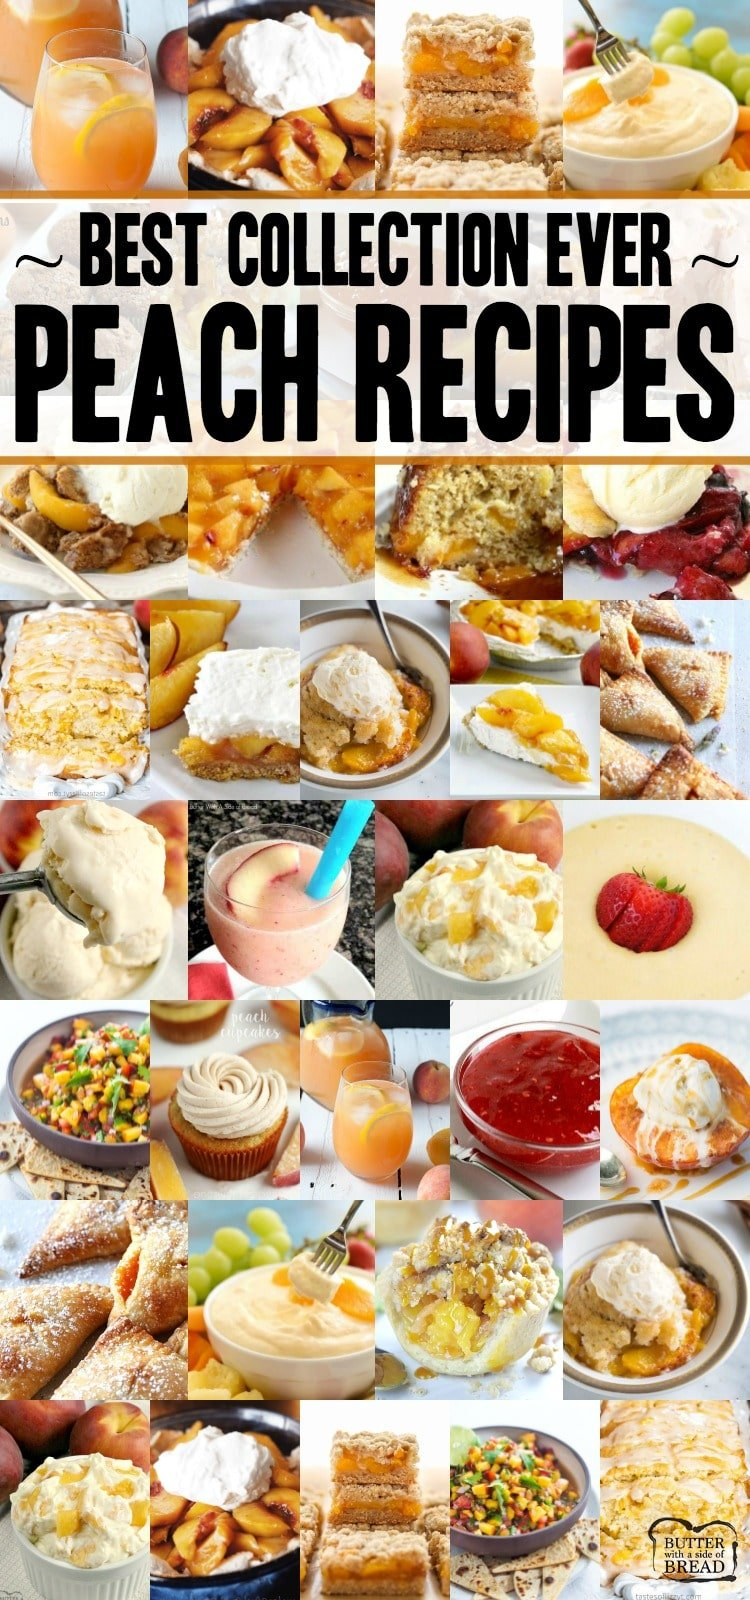 The VERY best peach recipes ever! Everything from Peach cobbler andpeach crisp topeach pie andpeaches & cream salad! Here's what you should make with those fresh peaches.#peach #recipes #peaches #peachcobbler #peachpie #freshpeaches from BUTTER WITH A SIDE OF BREAD